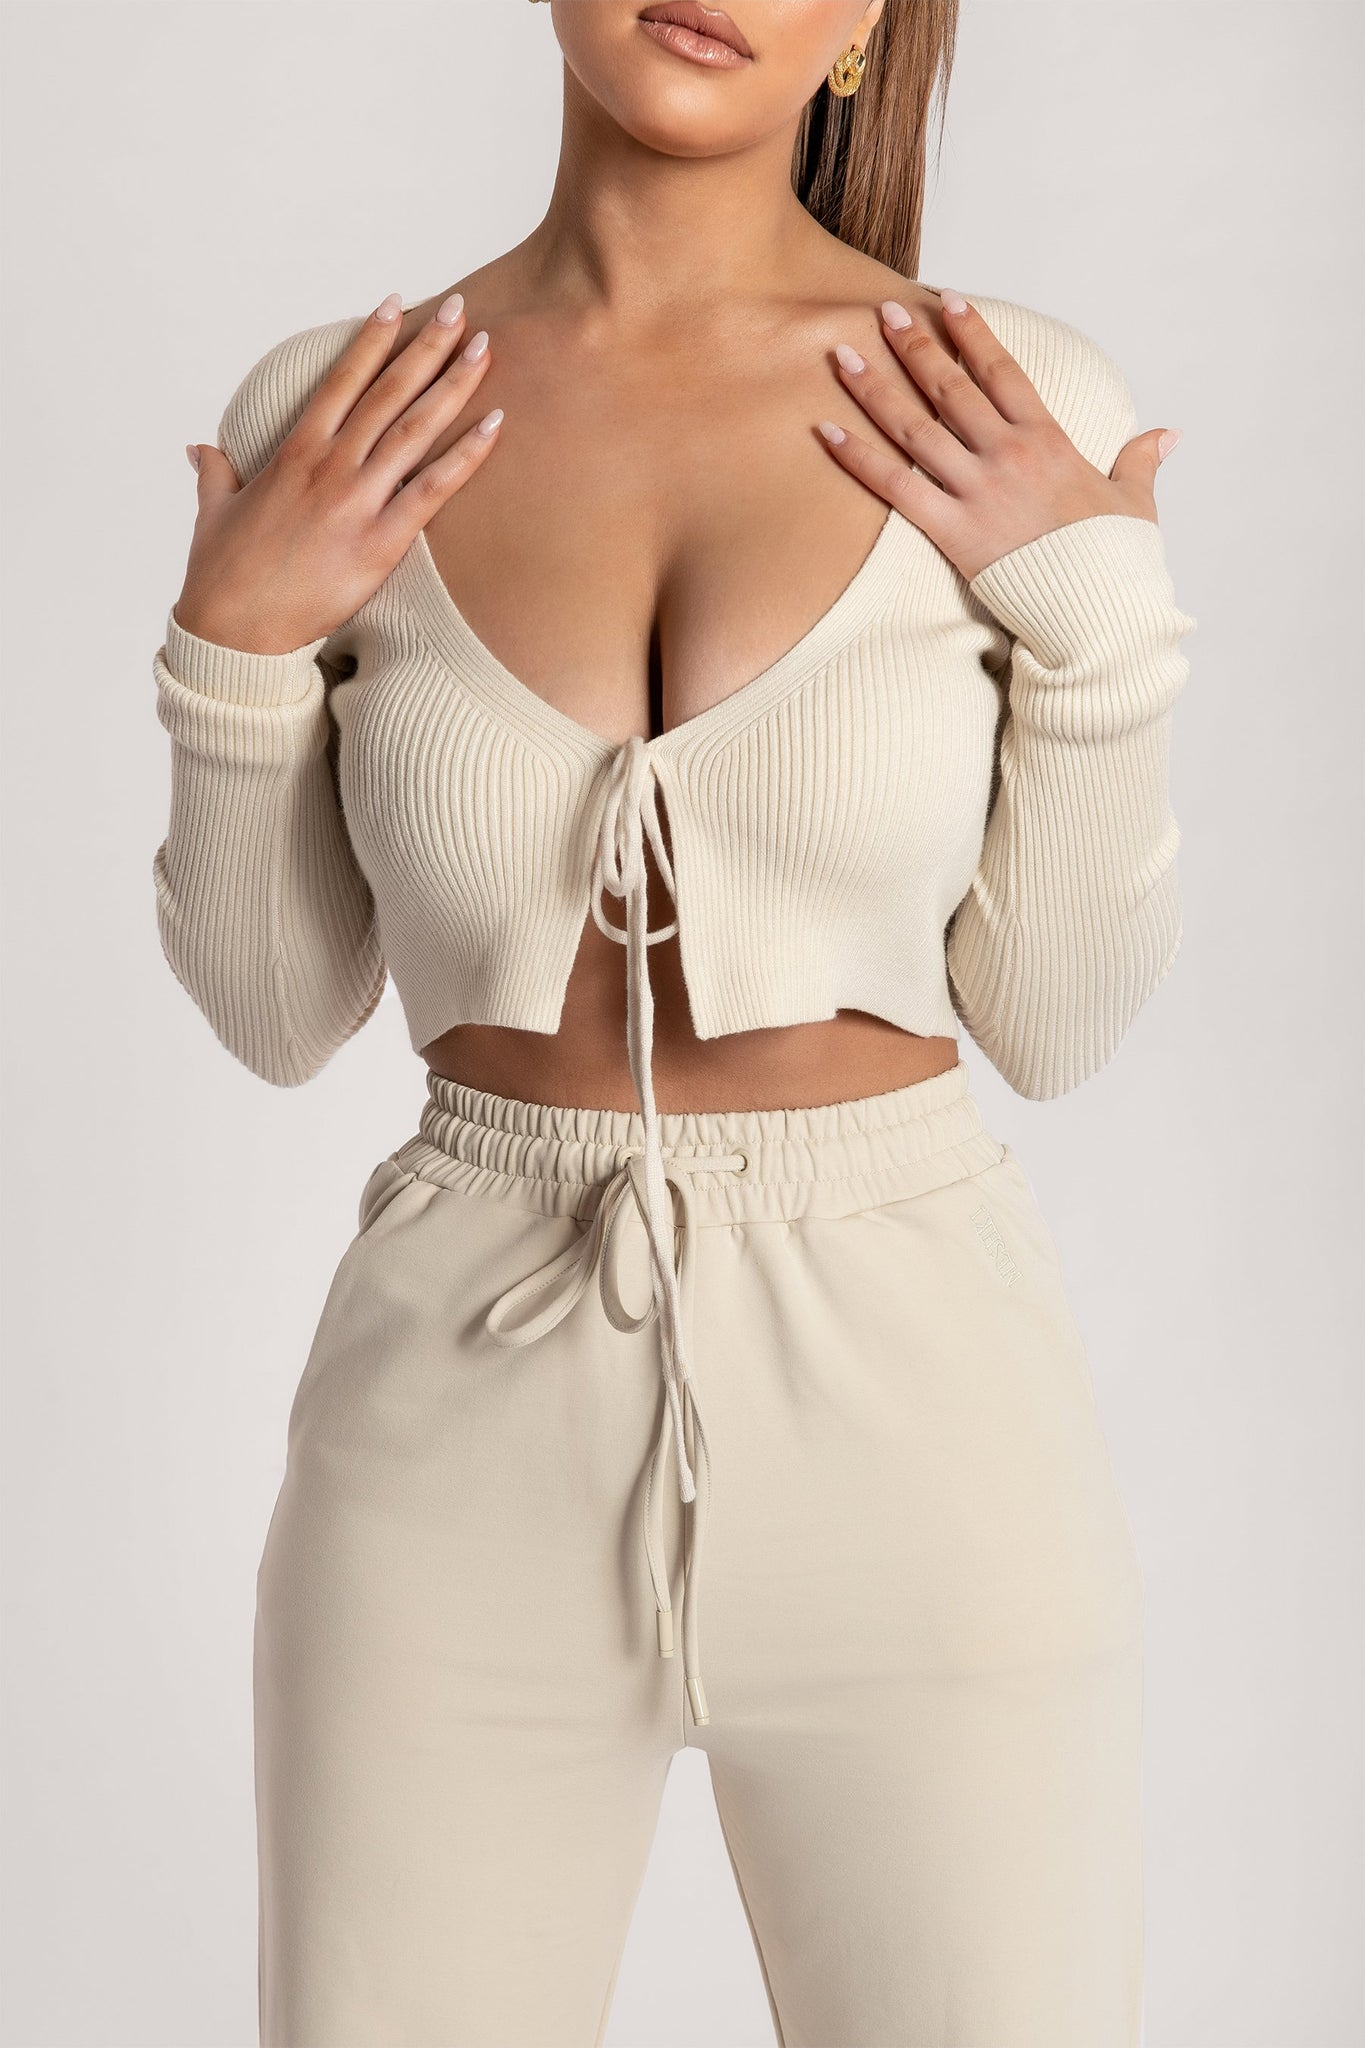 Bobbie Ribbed Tie Front Crop Top - Cream - MESHKI